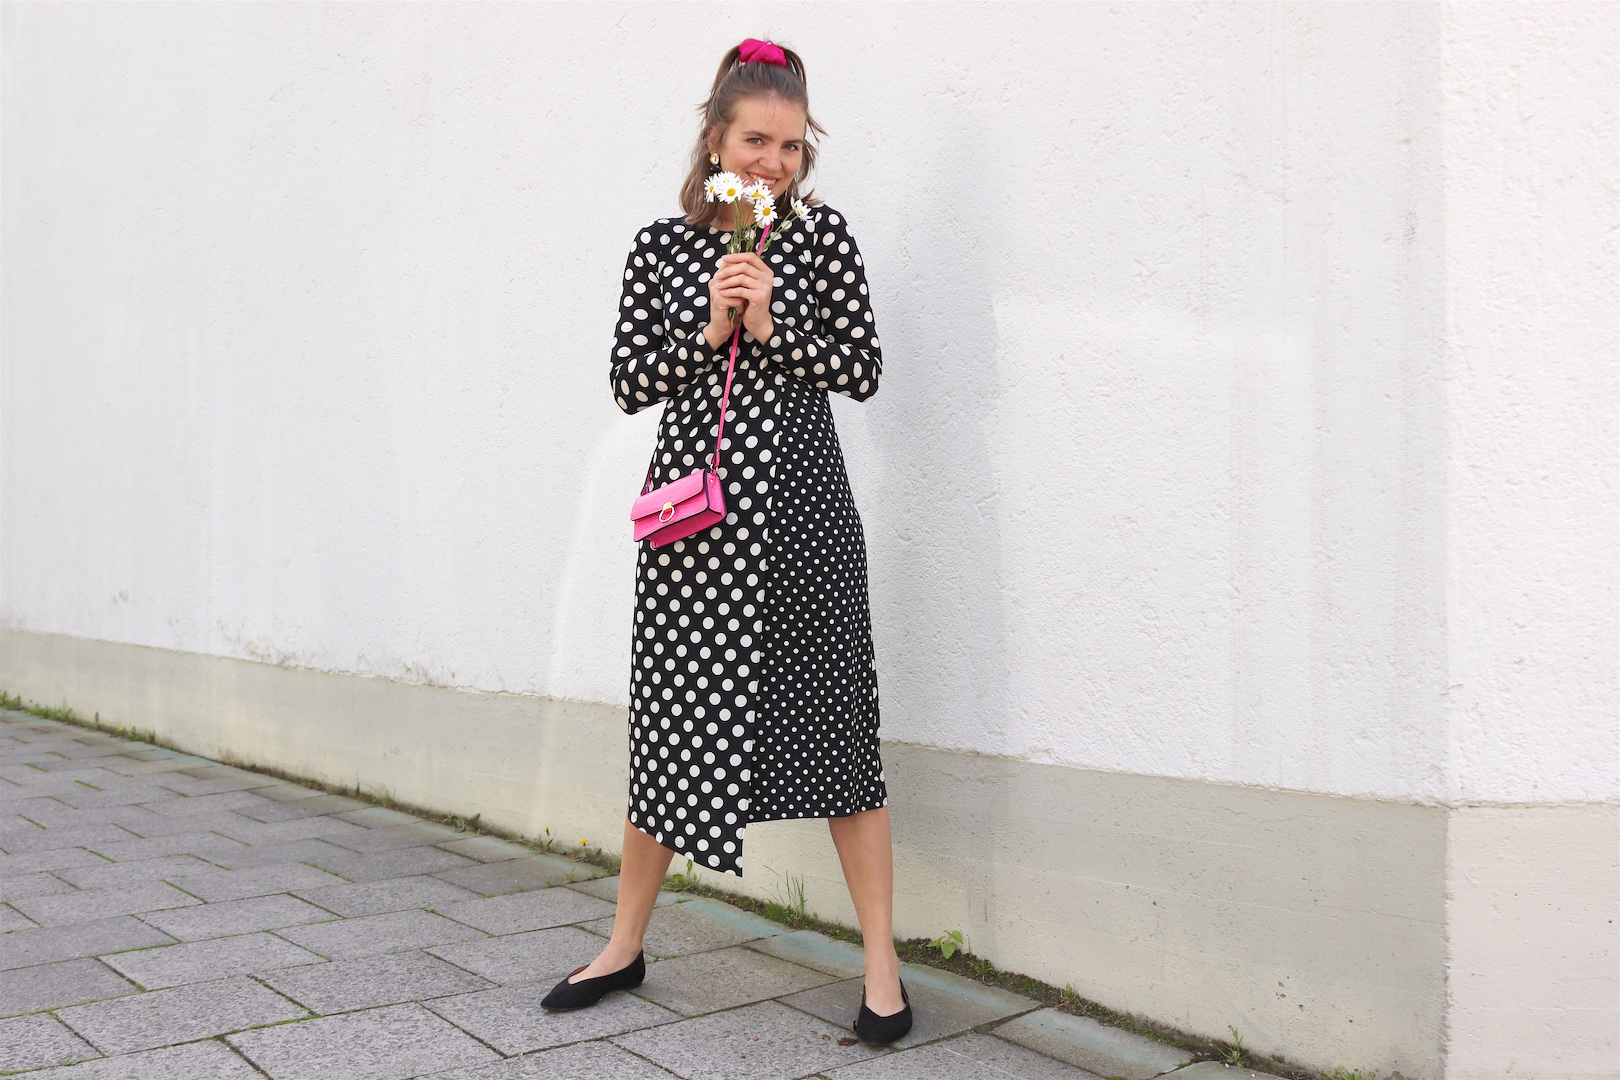 Polka Dots Marguerites. Fashion and Style Blog Girl from Heartfelt Hunt. Girl with blonde half-up half-down hairstyle and pink scrunchie wearing a polka dot dress, gold earrings, pink mini bag and pointed flats.